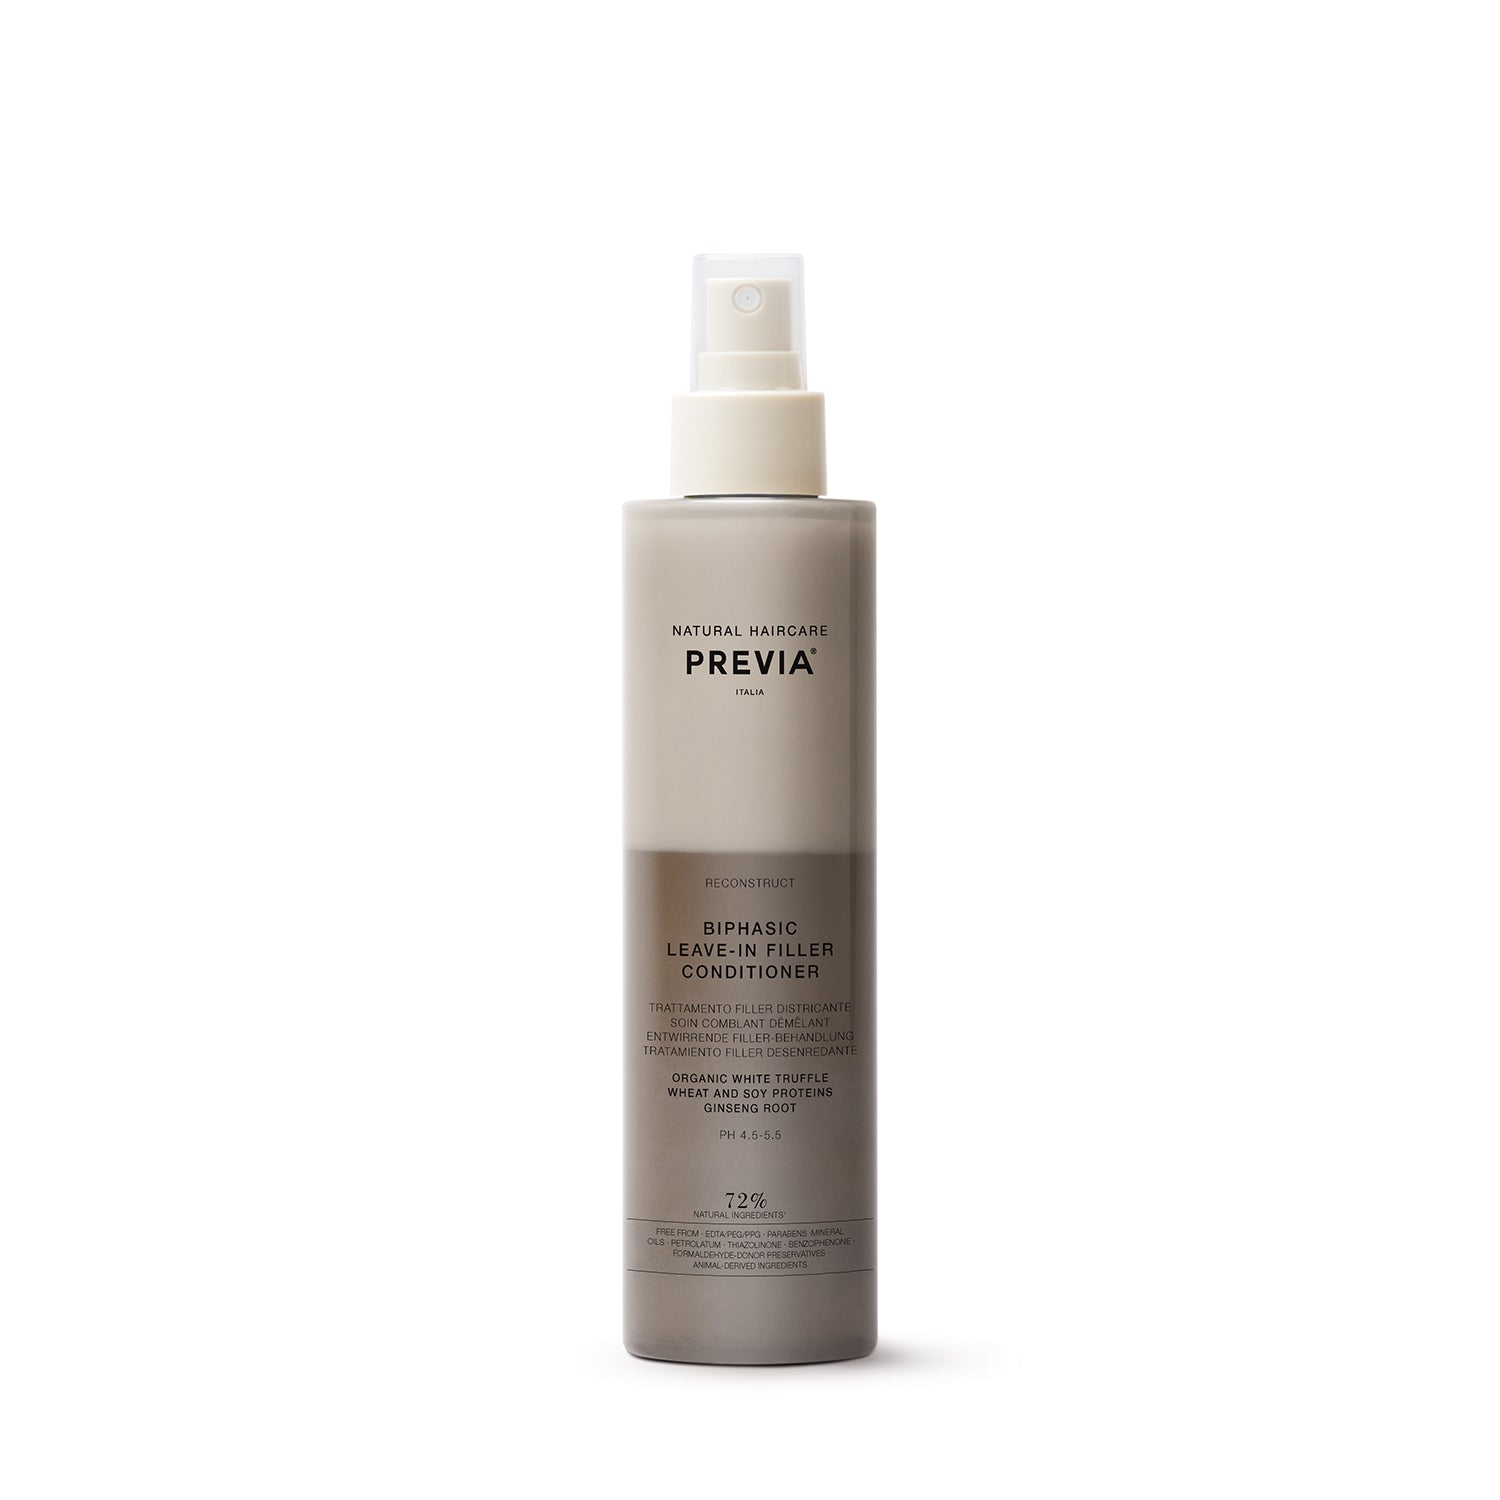 Previa Biphasic Leave-In Filler Conditioner 218ml